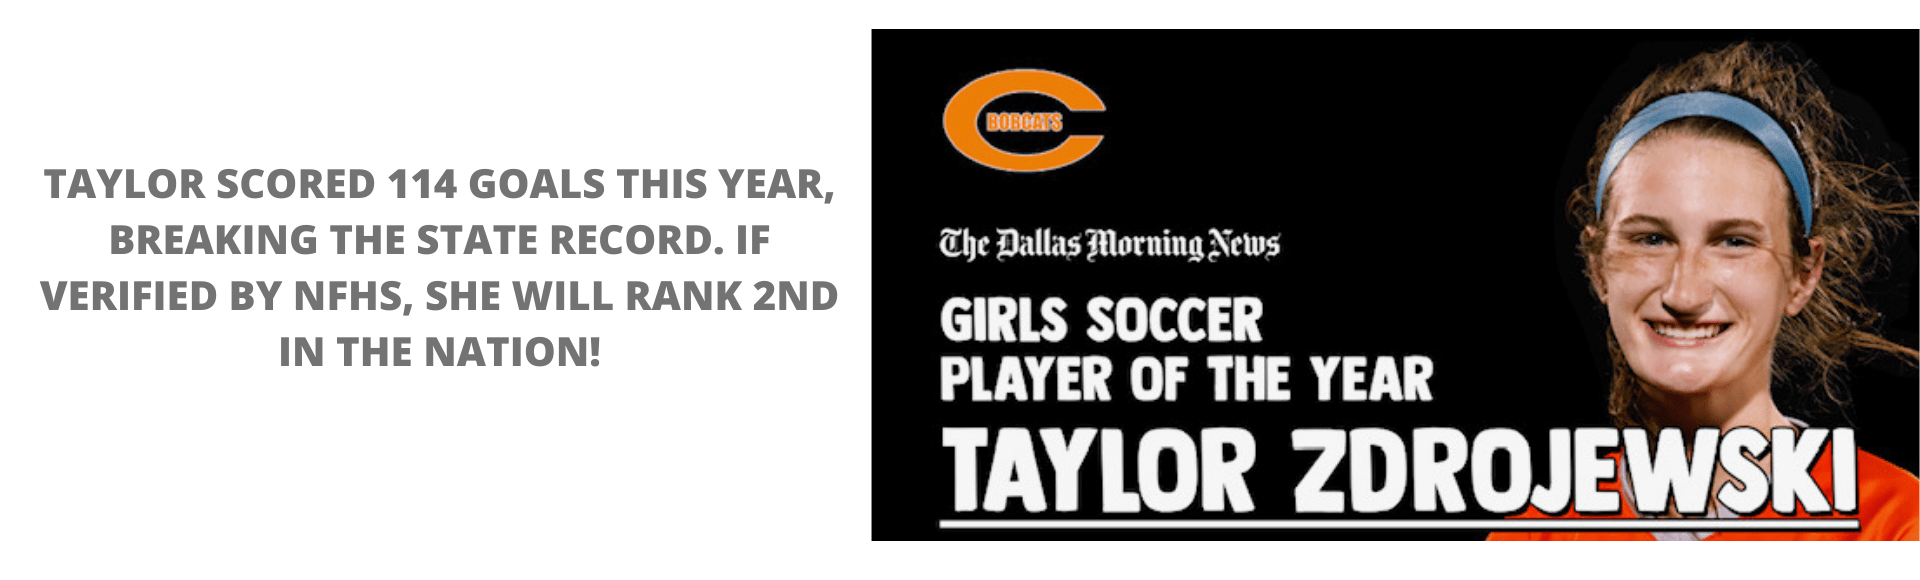 Dallas Morning News Female Soccer Player of the Year!